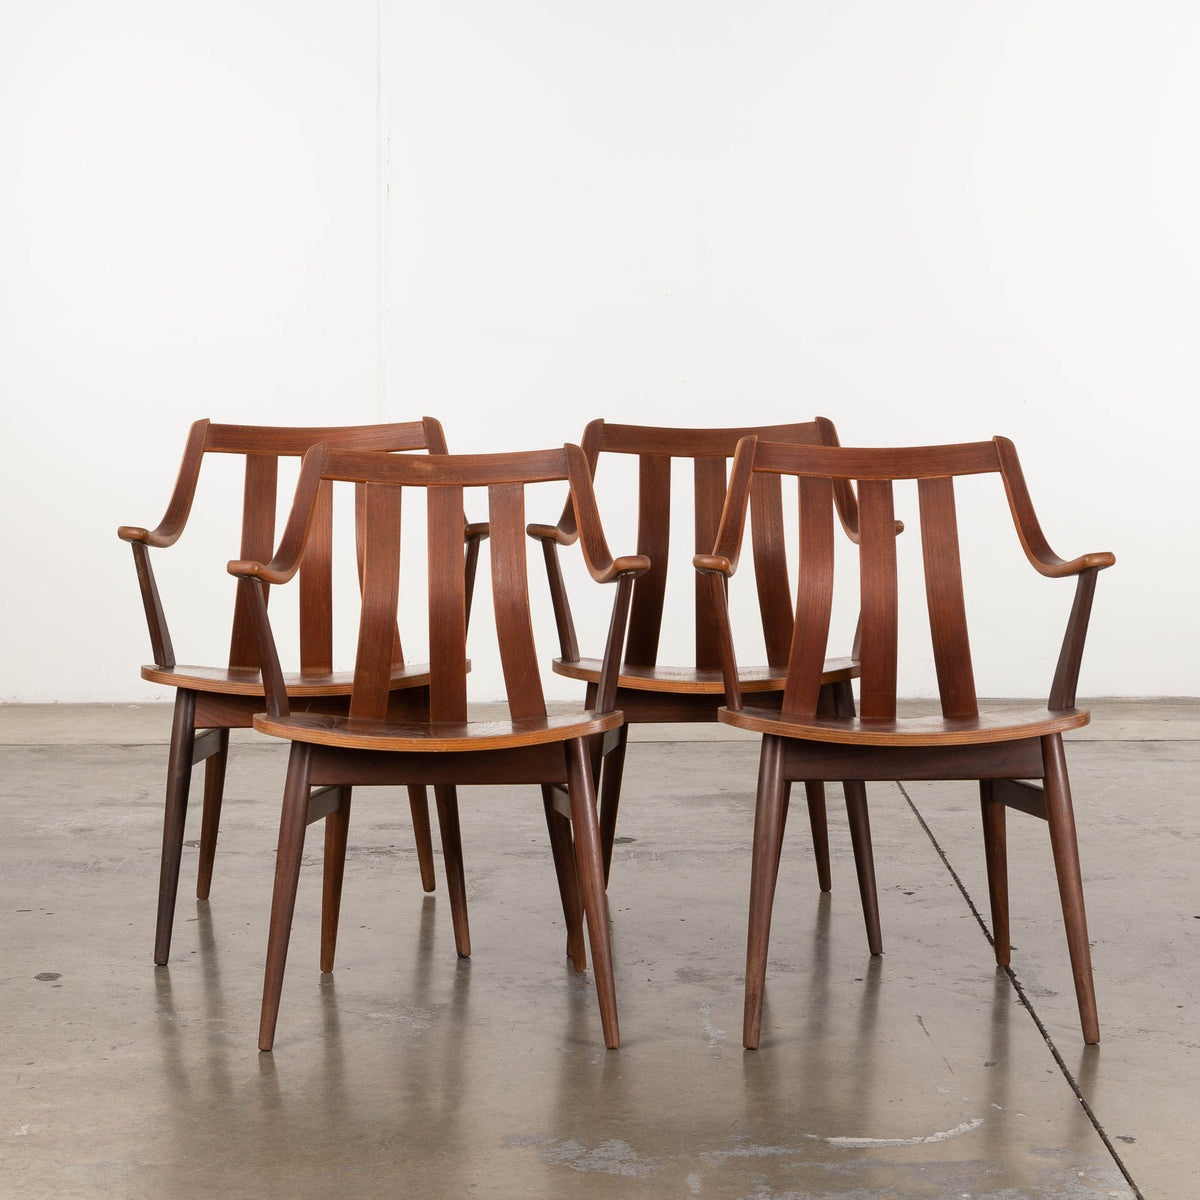 Load image into Gallery viewer, Wooden Dining Chair Set I